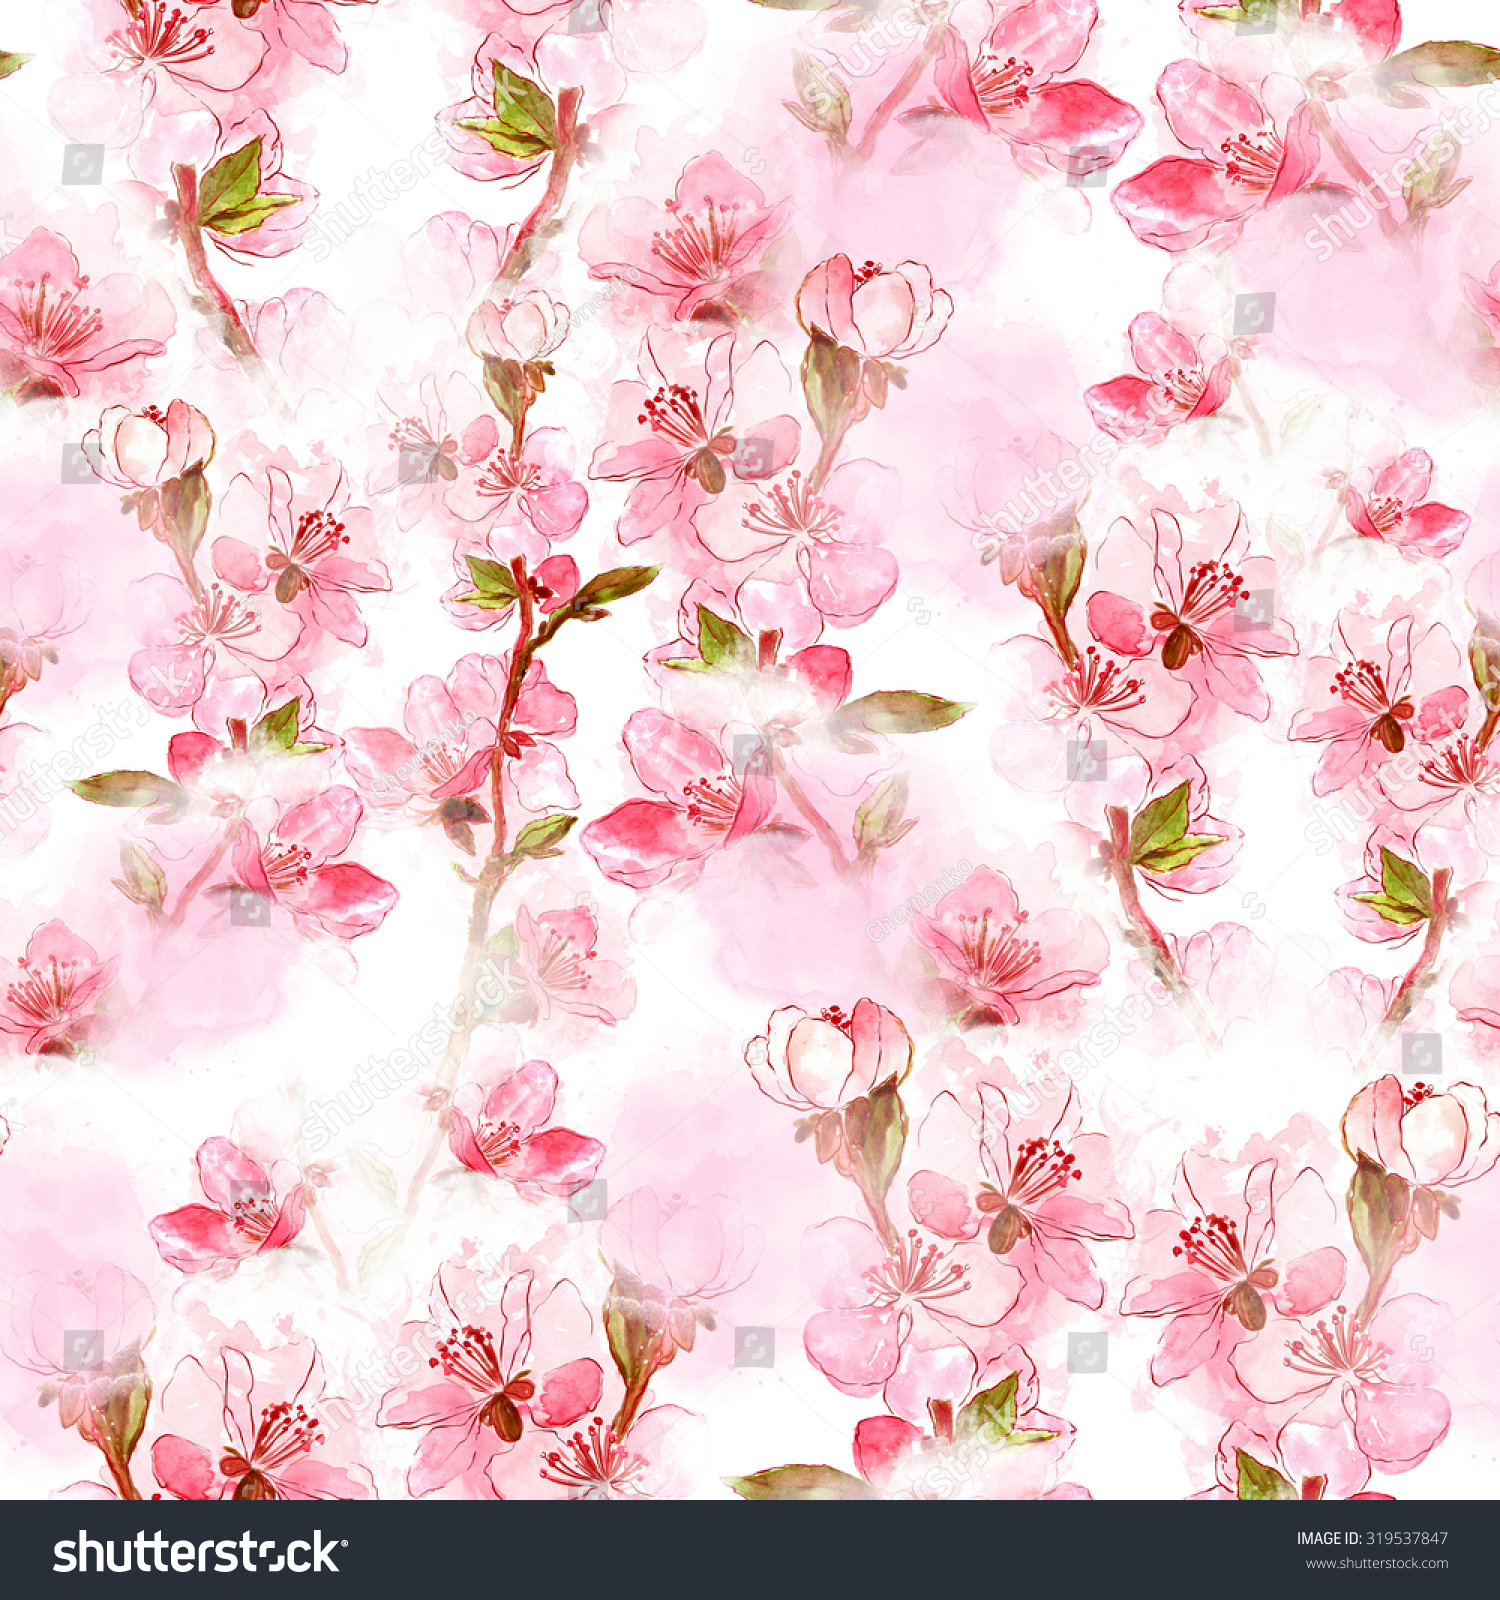 Delicate Japanese Cherry Blossoms